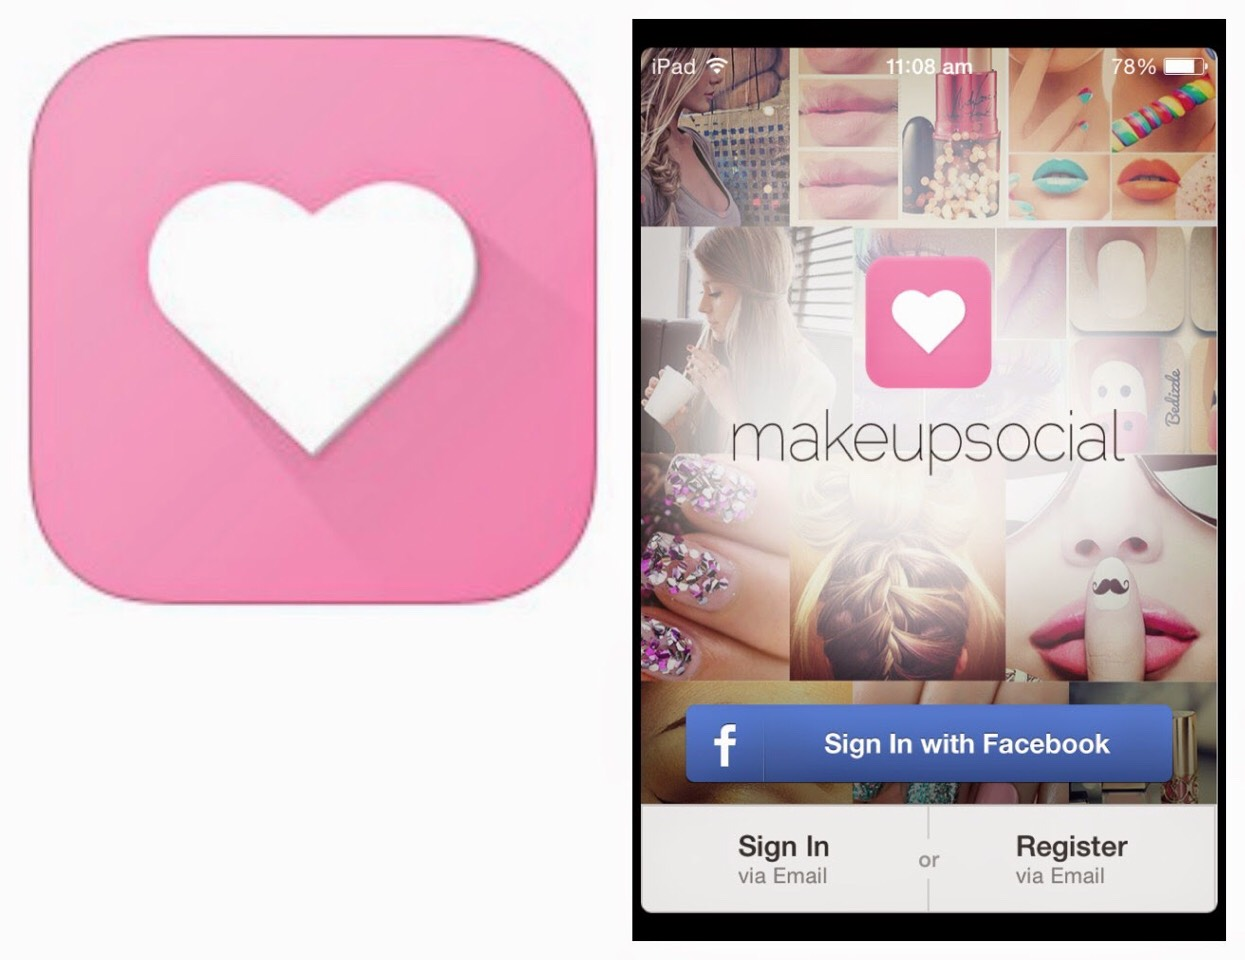 Girls If You Love Makeup Like Me Download This App, its like Instagram but people just post about makeup and hair stuff, you can ask for products reviews and dupes and they help you, its very fun, I love it. Download it you will love it too, its name is makeup social